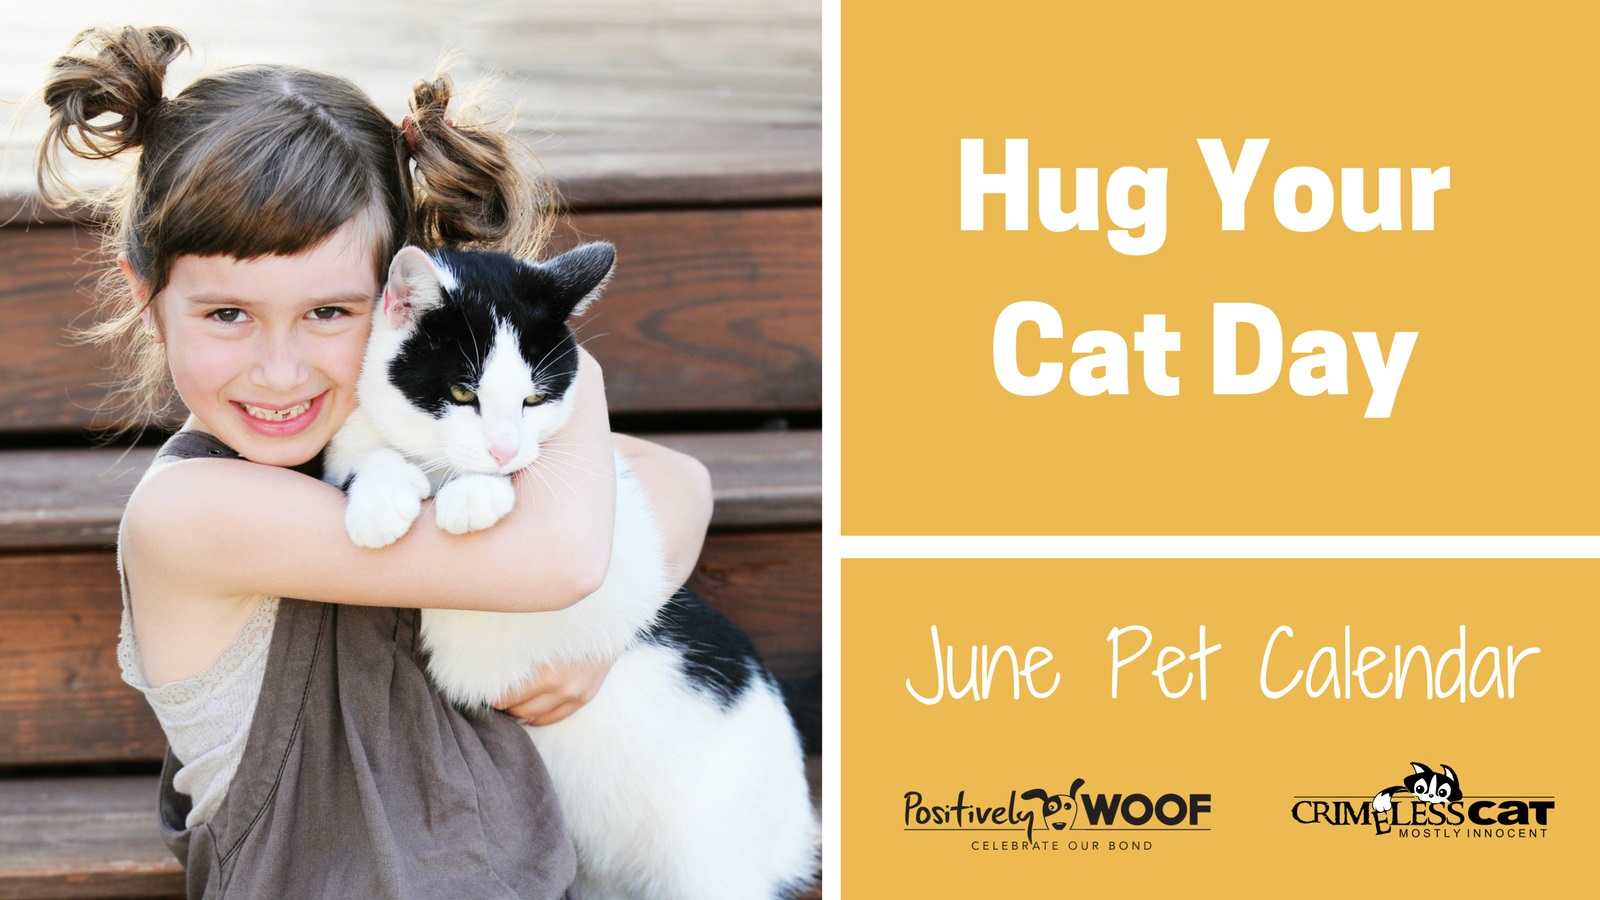 hug your cat day